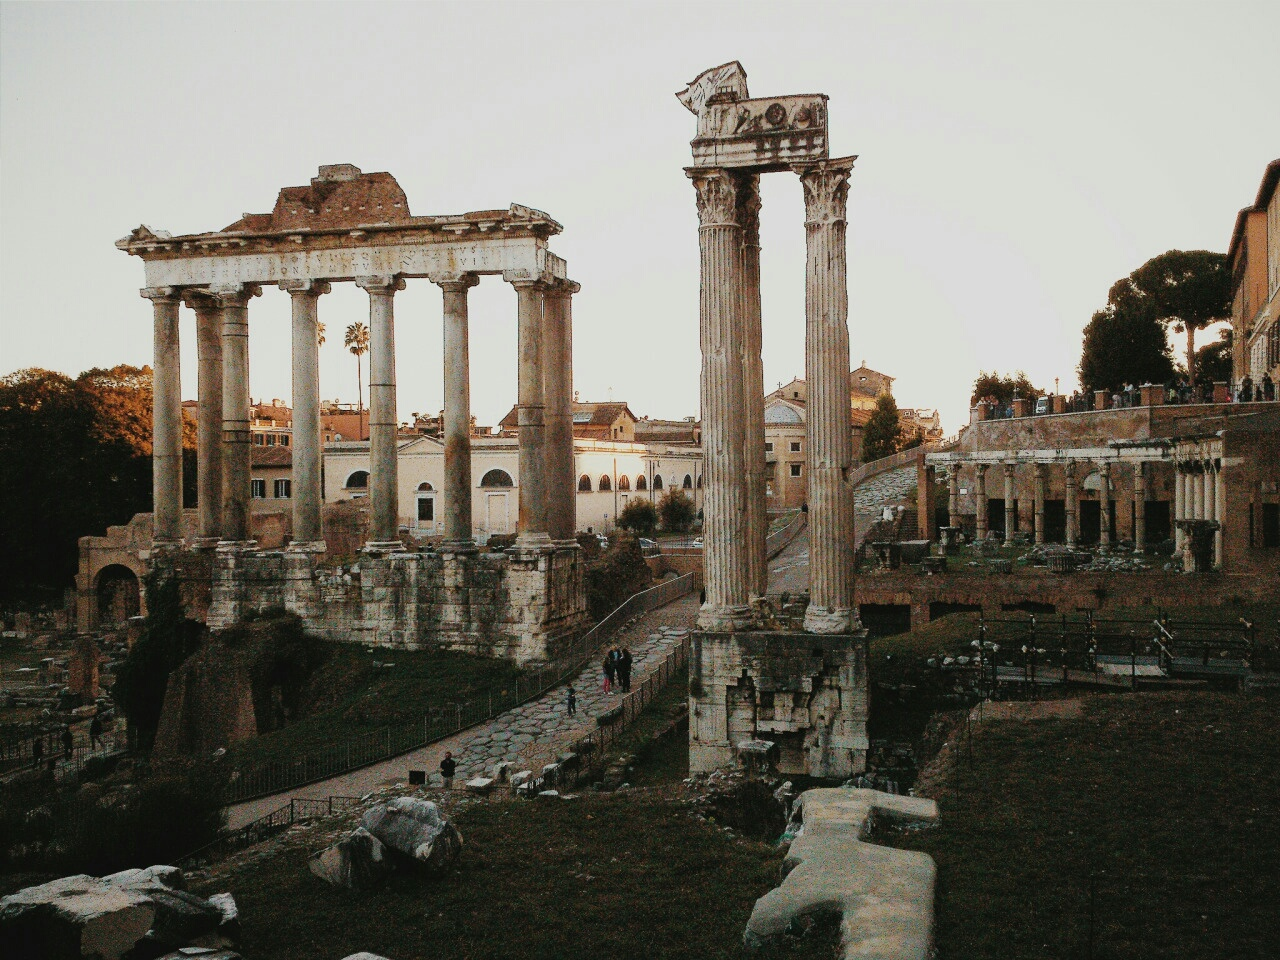 amazing, antique, beautiful, history, old, rome, ruined, favourite places, visit the world